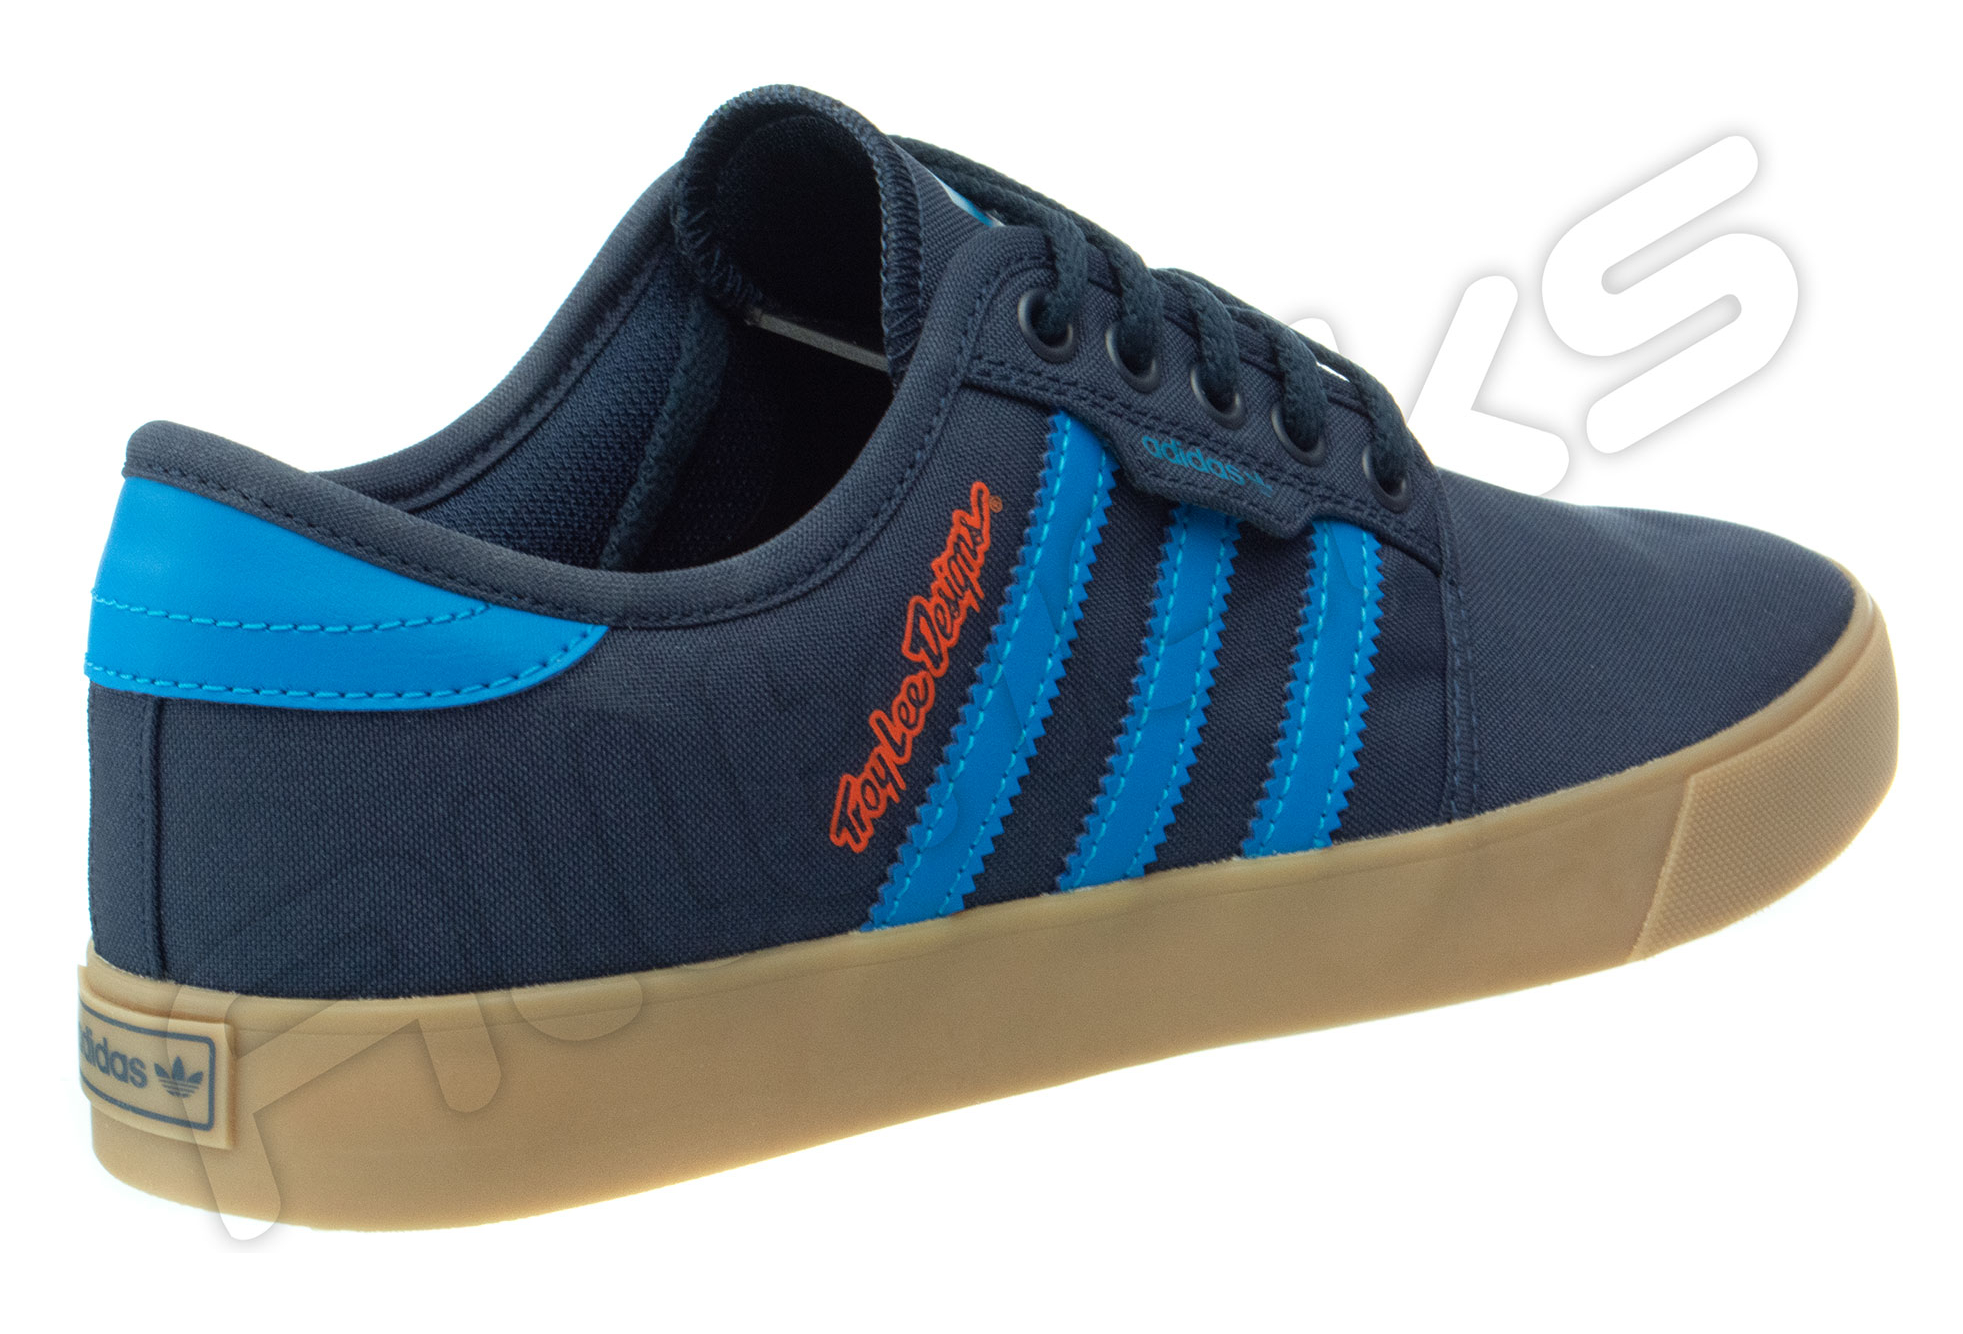 Troy Lee Designs Seeley LTD Adidas Team Shoes Navy Blue